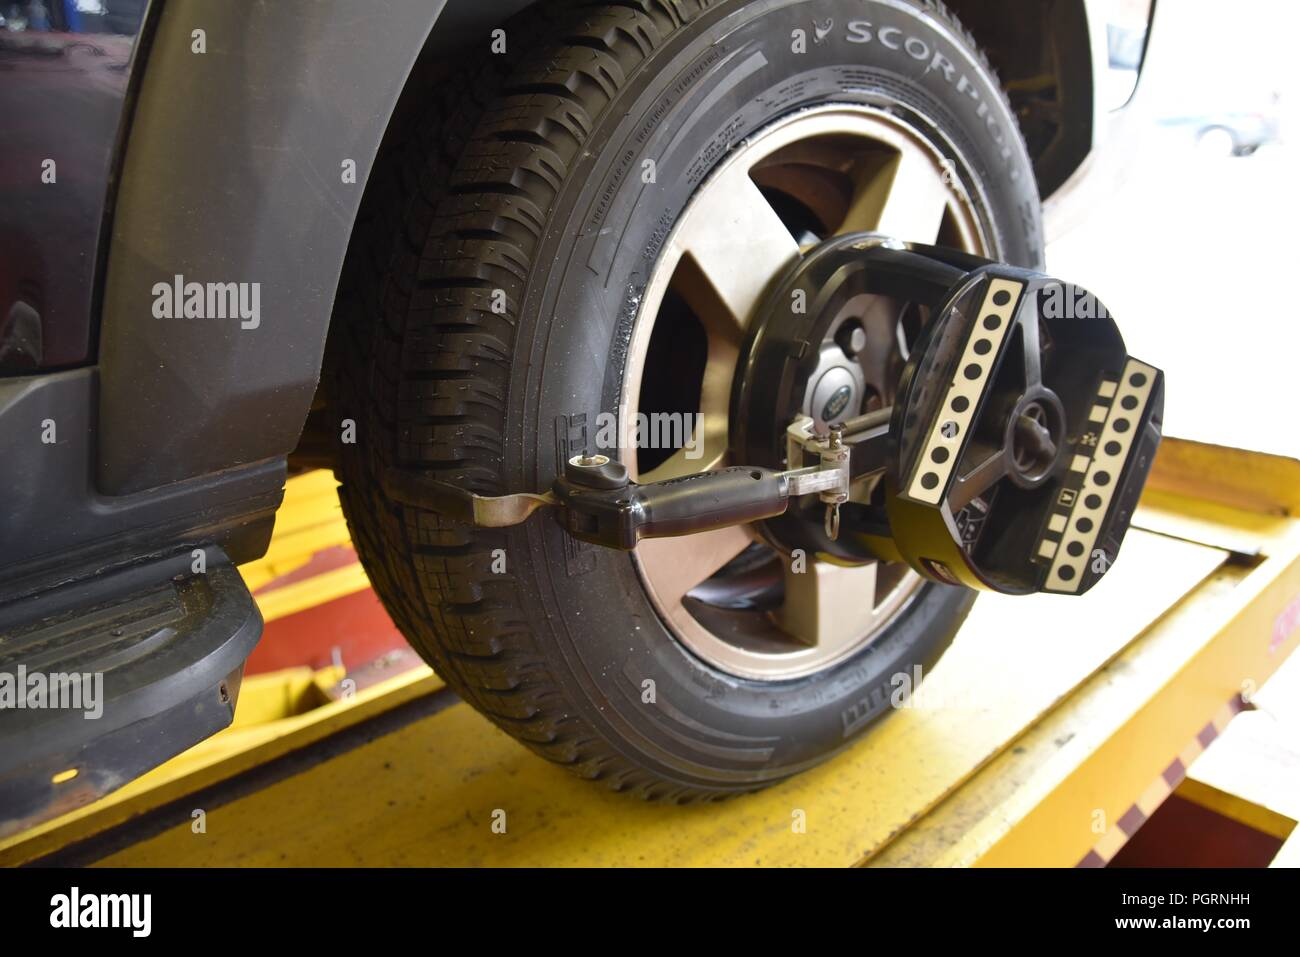 Tyre/tire fitting: a vehicle raised on a ramp and undergoing a wheel alignment test - Stock Image